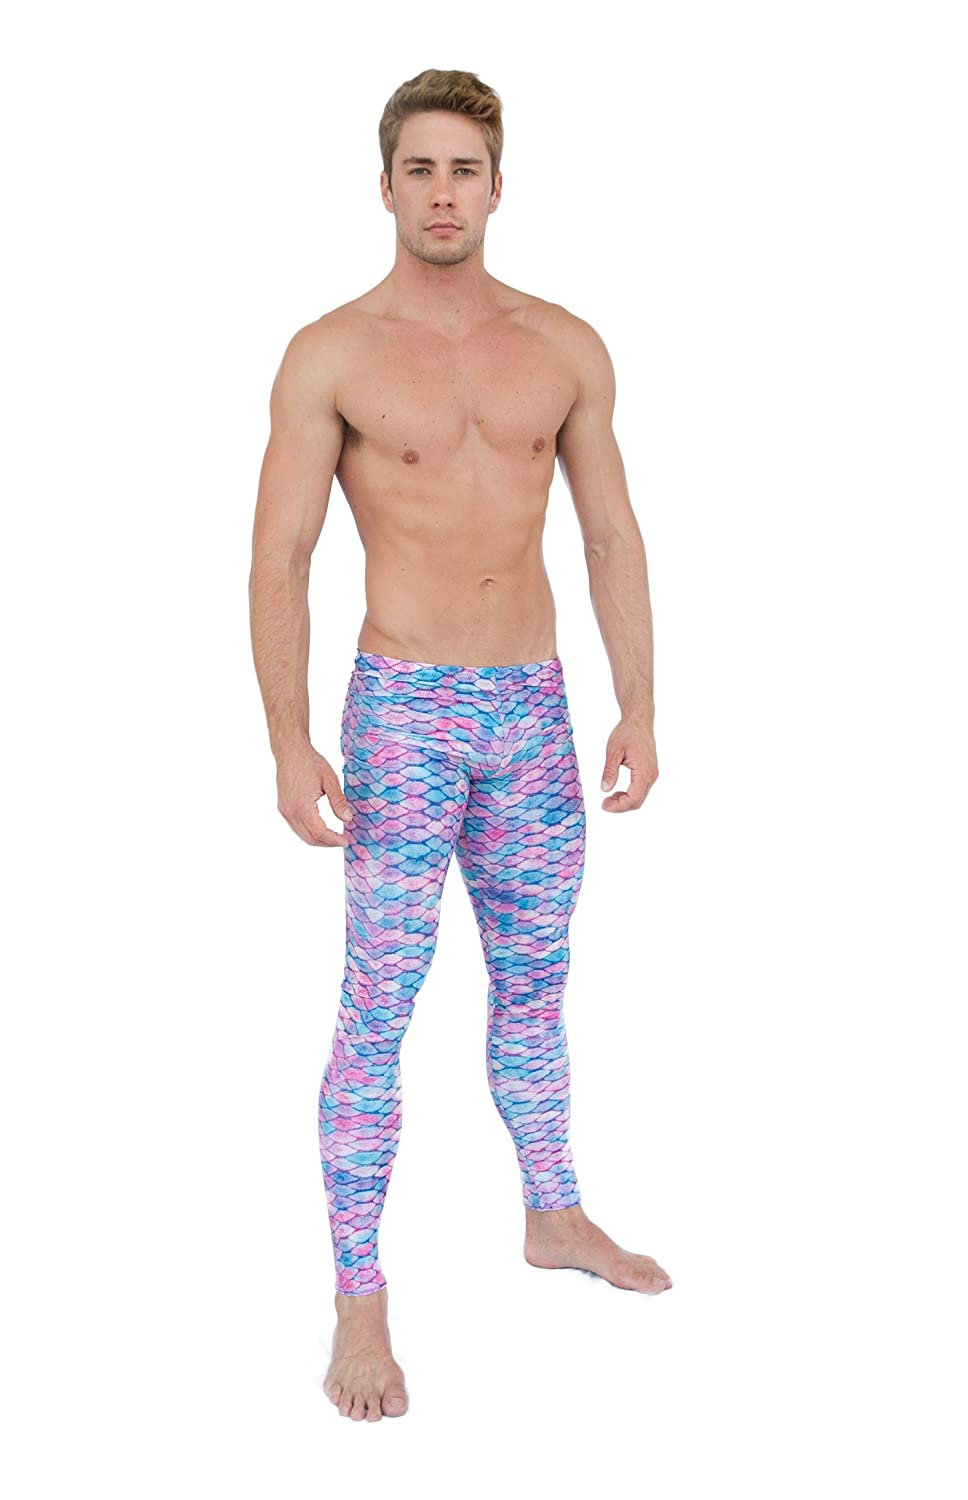 Mertailor Mens Leggings Jellyfish Dream)